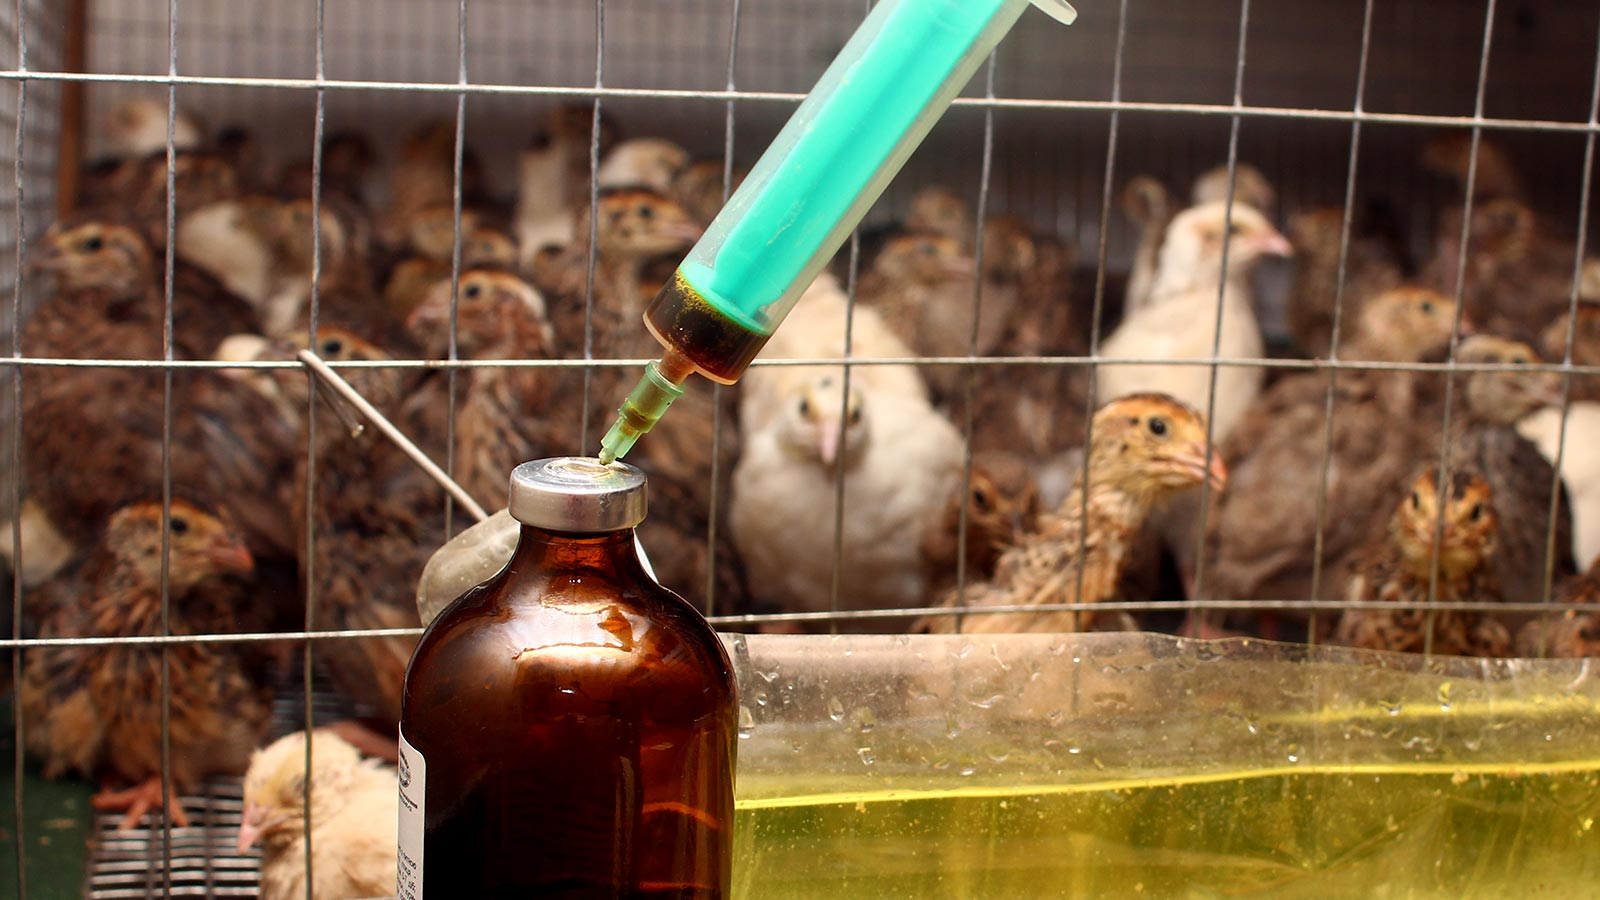 Resistencia antibioticos animales